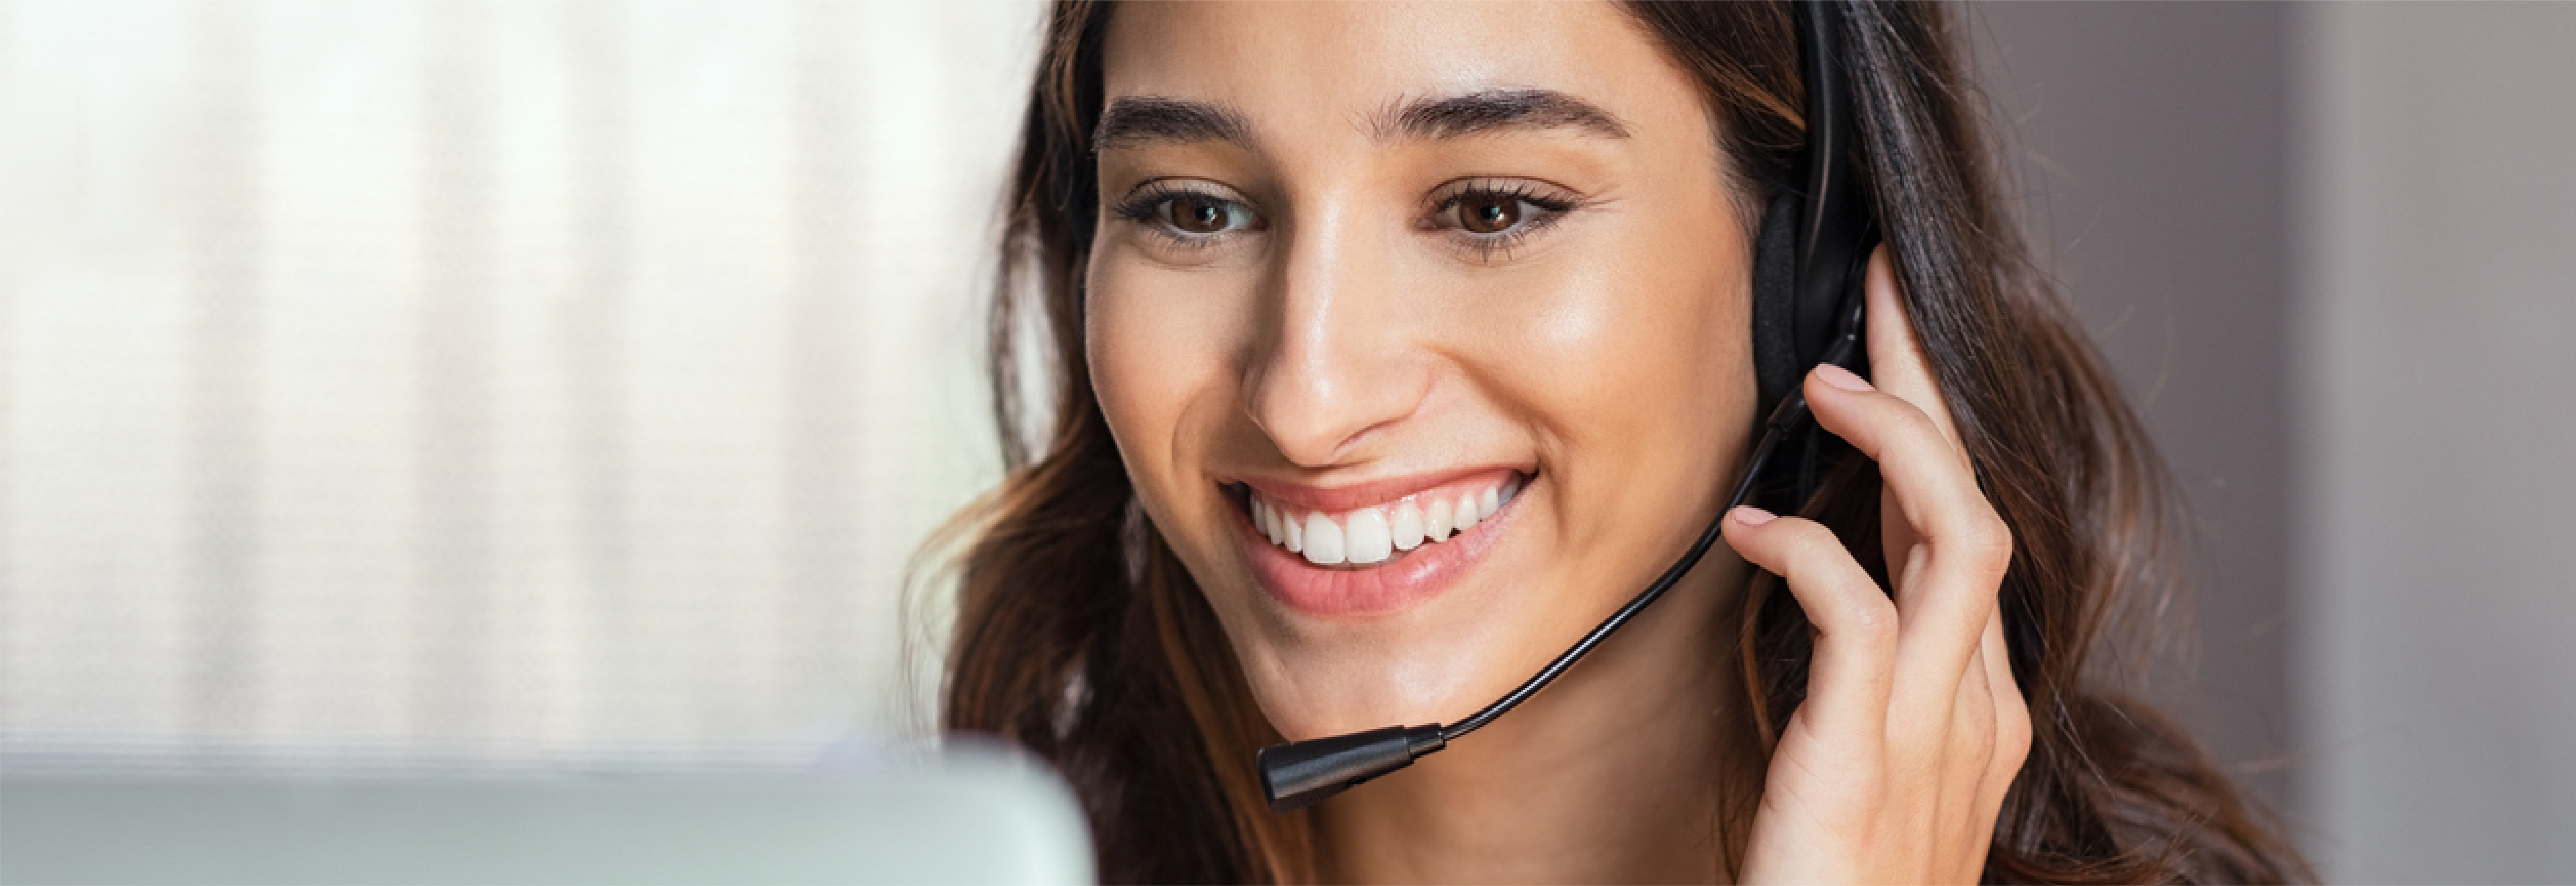 Customer Service Work-From-Home Jobs for Military Spouses